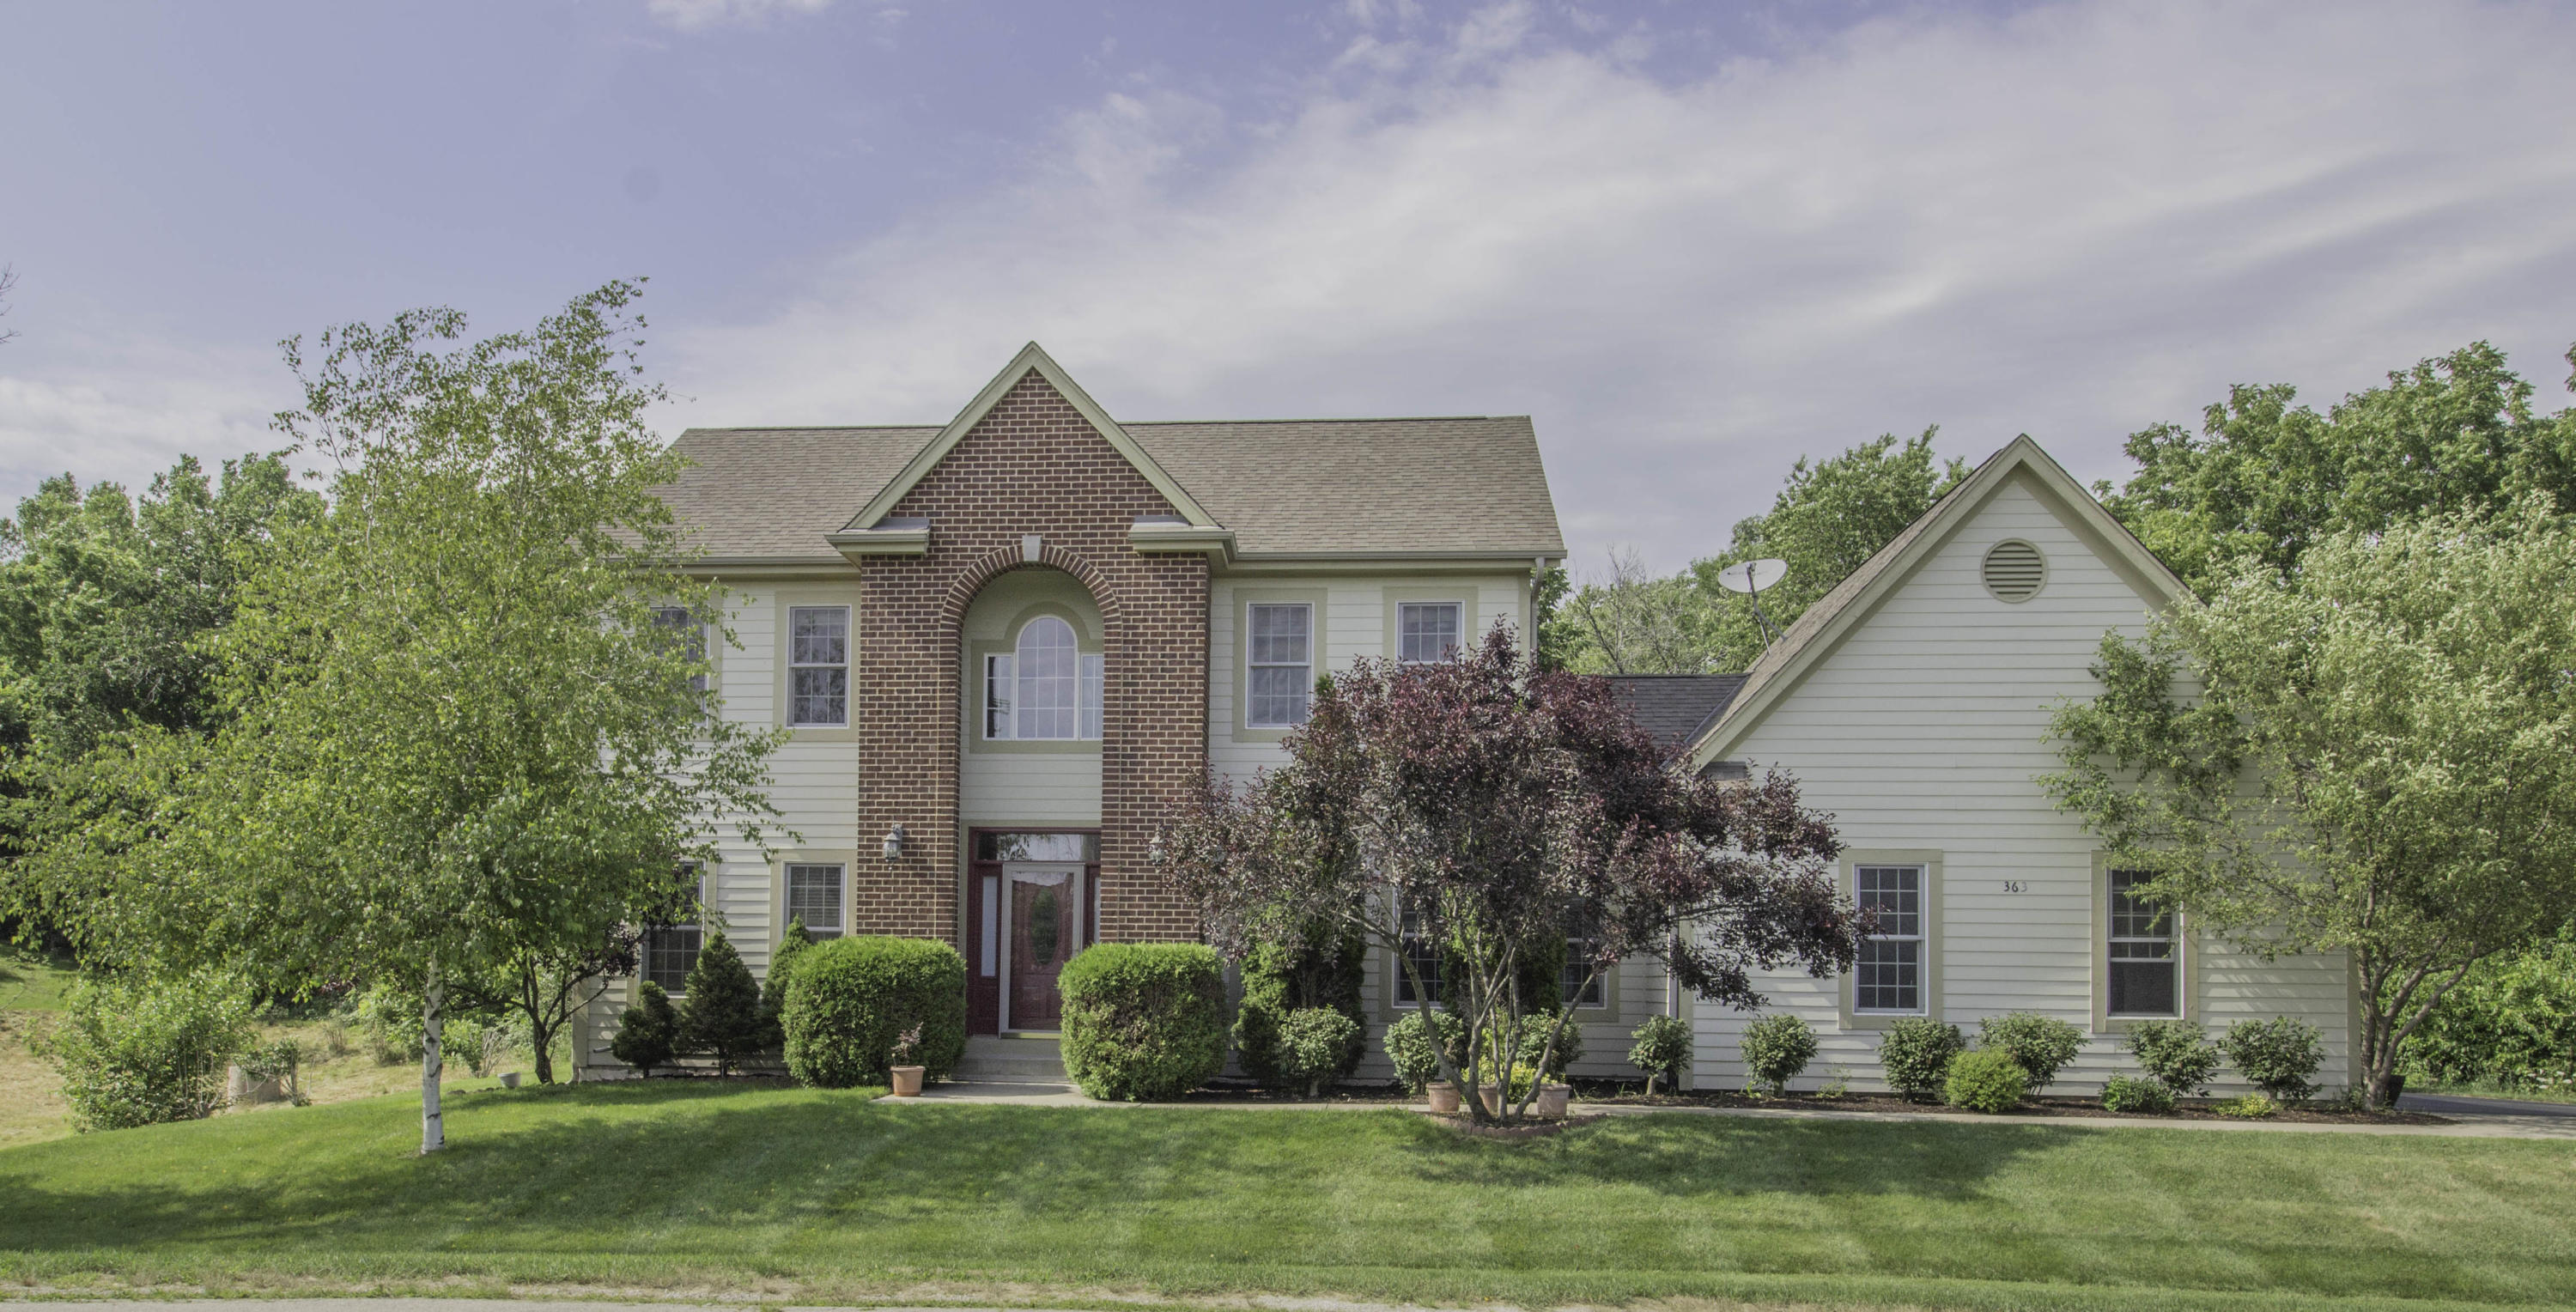 363 Stocks Dr, Delafield, Wisconsin 53018, 3 Bedrooms Bedrooms, 6 Rooms Rooms,2 BathroomsBathrooms,Single-Family,For Sale,Stocks Dr,1699687